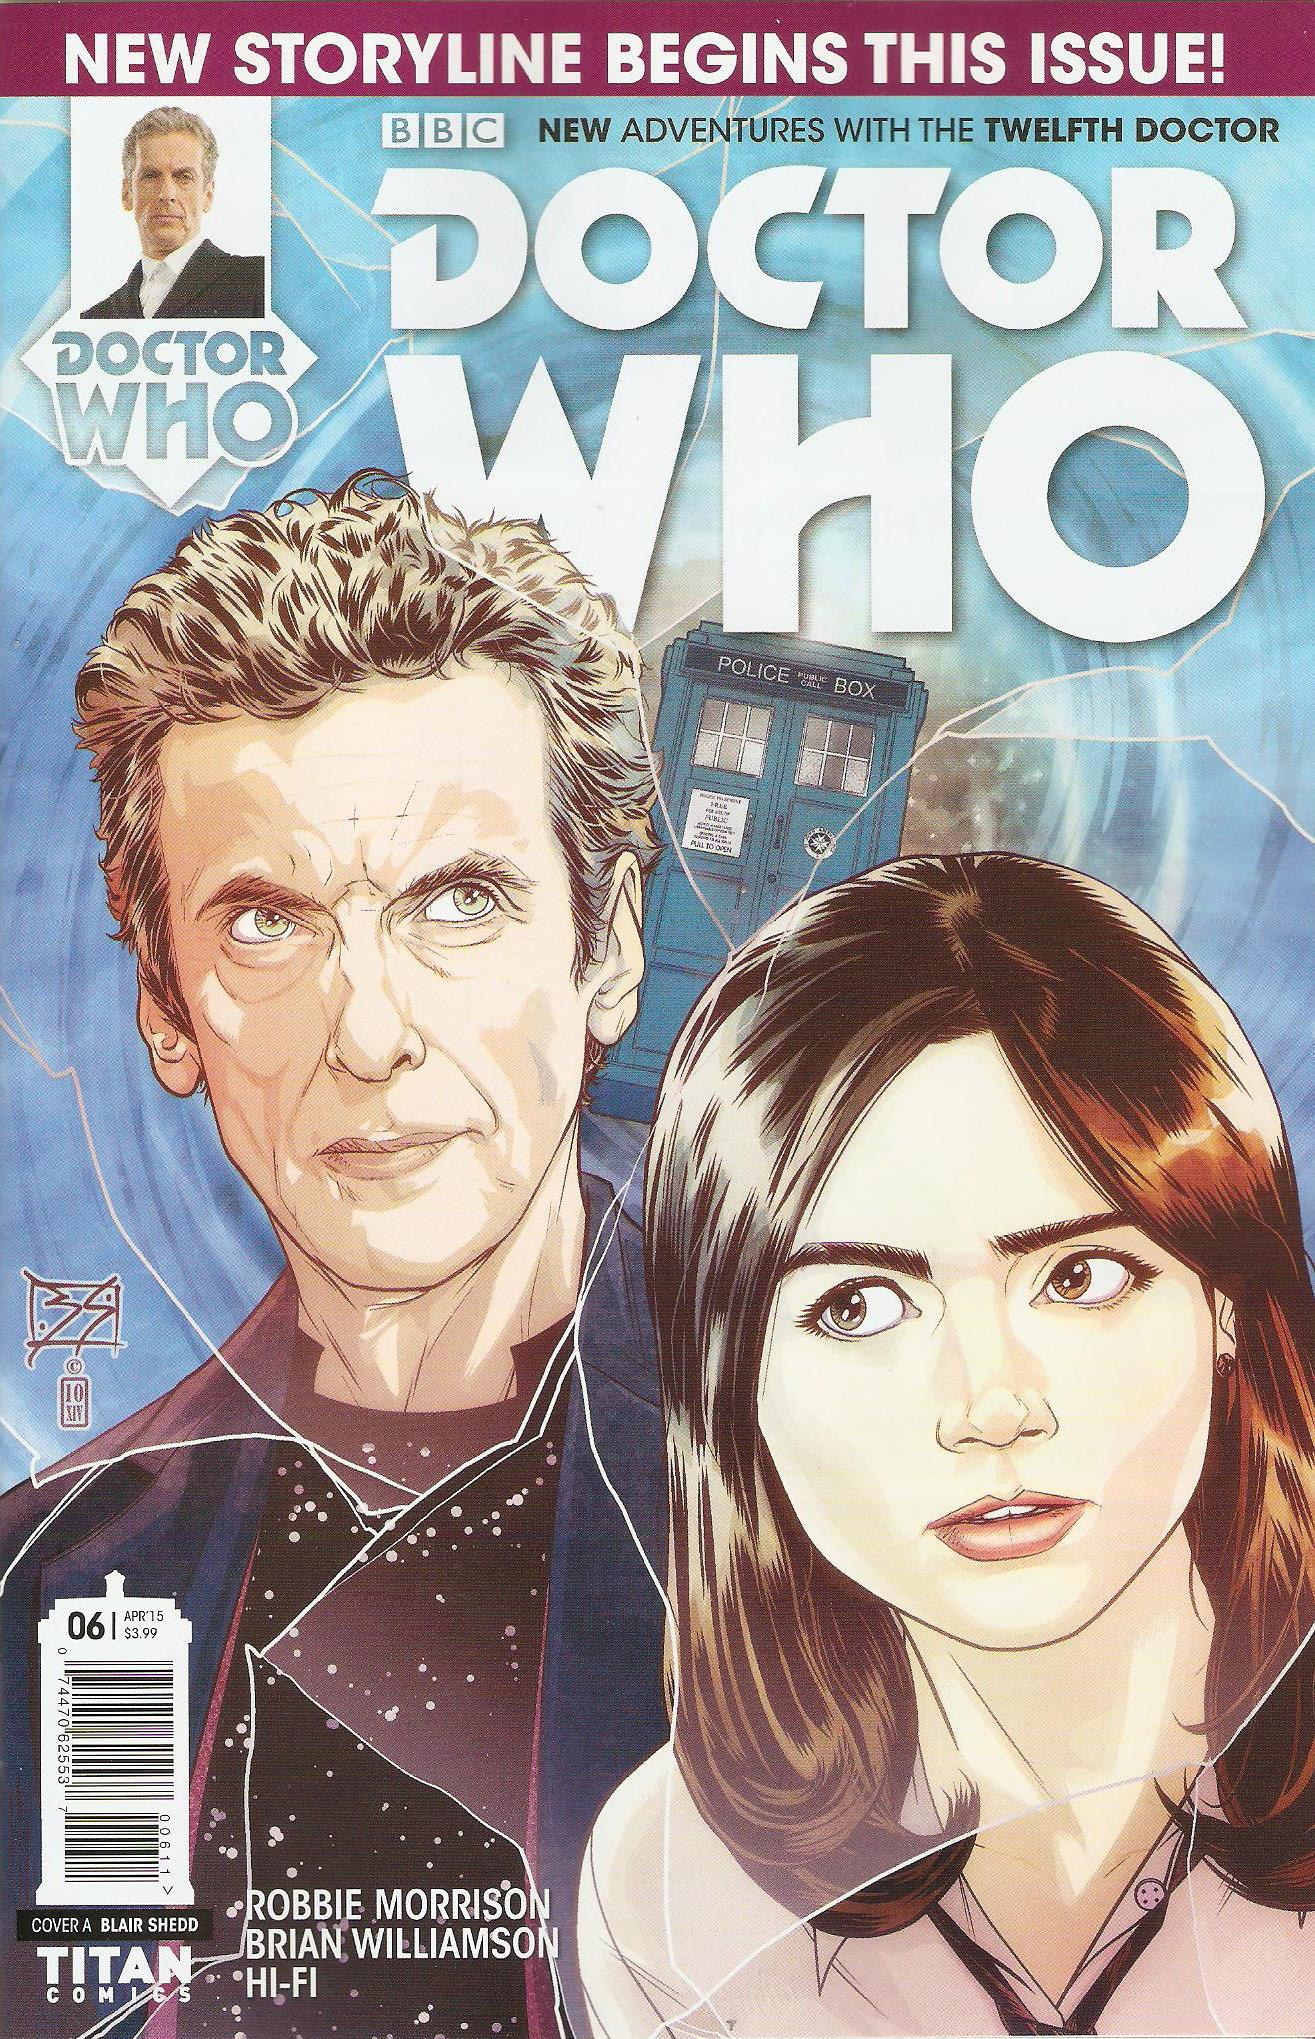 Twelfth doctor issue 6a